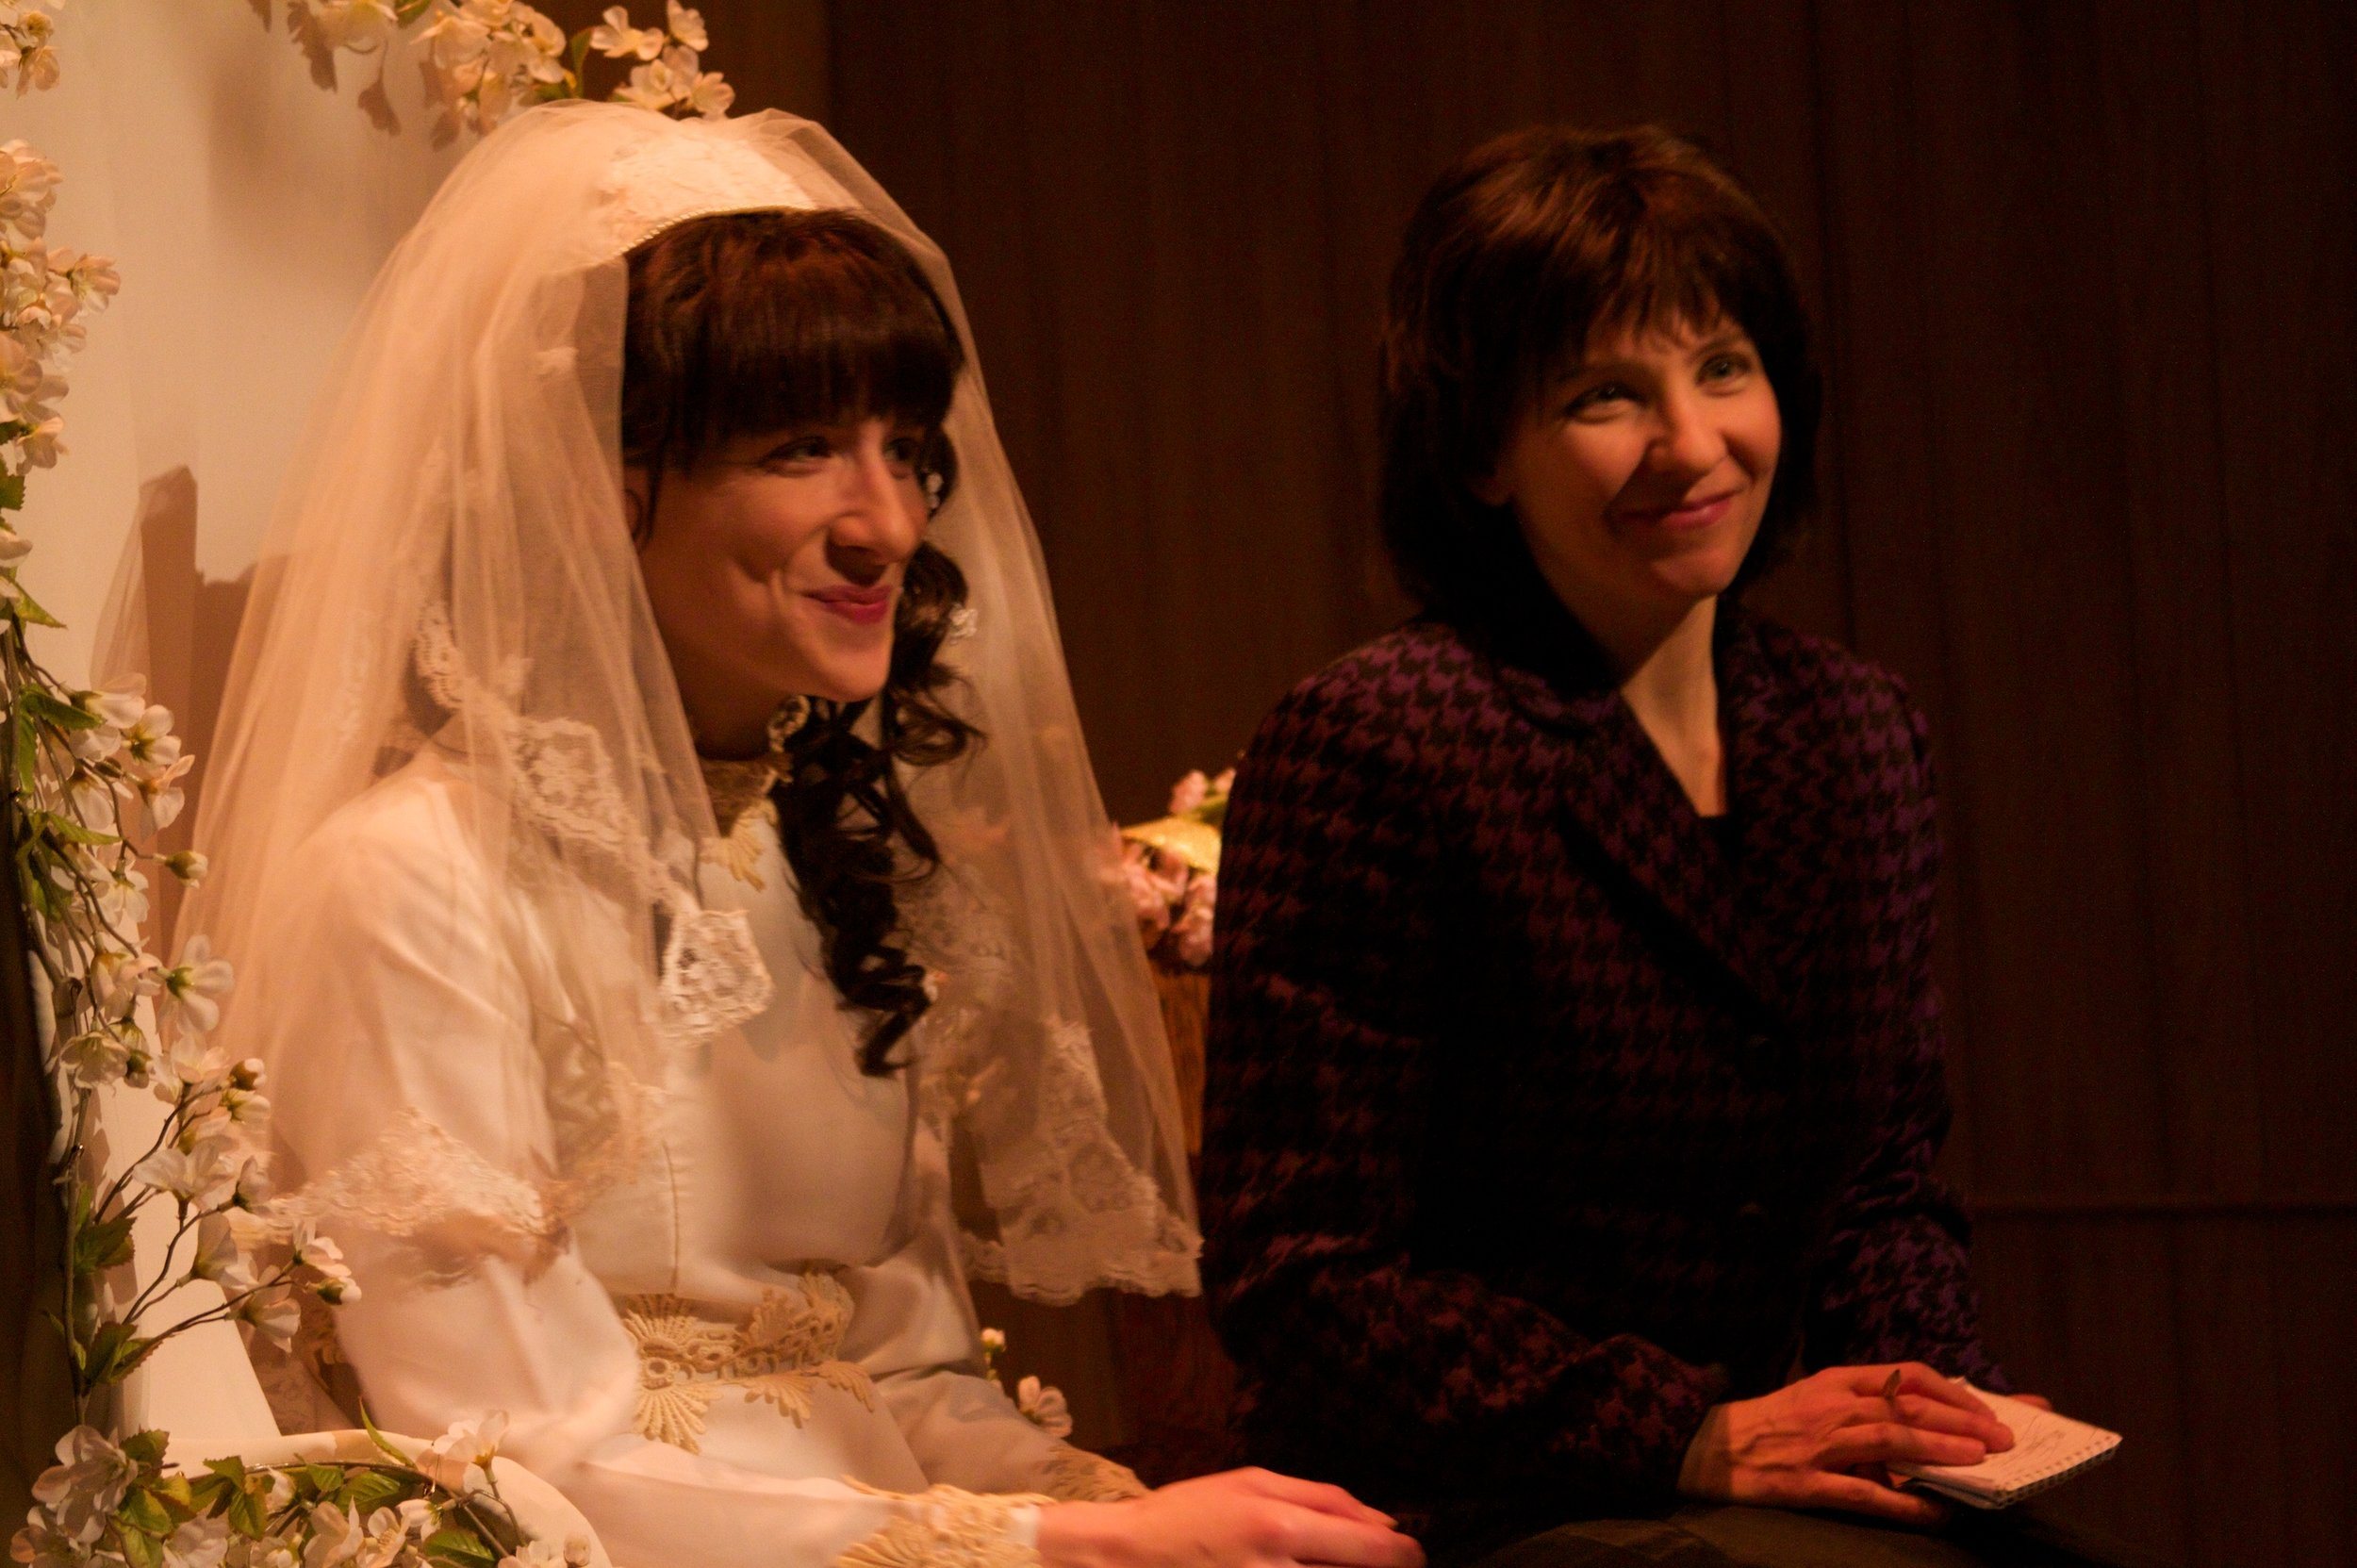 Julie Tepperman as Rachel and Diane Flacks as Malka in YICHUD (Seclusion)